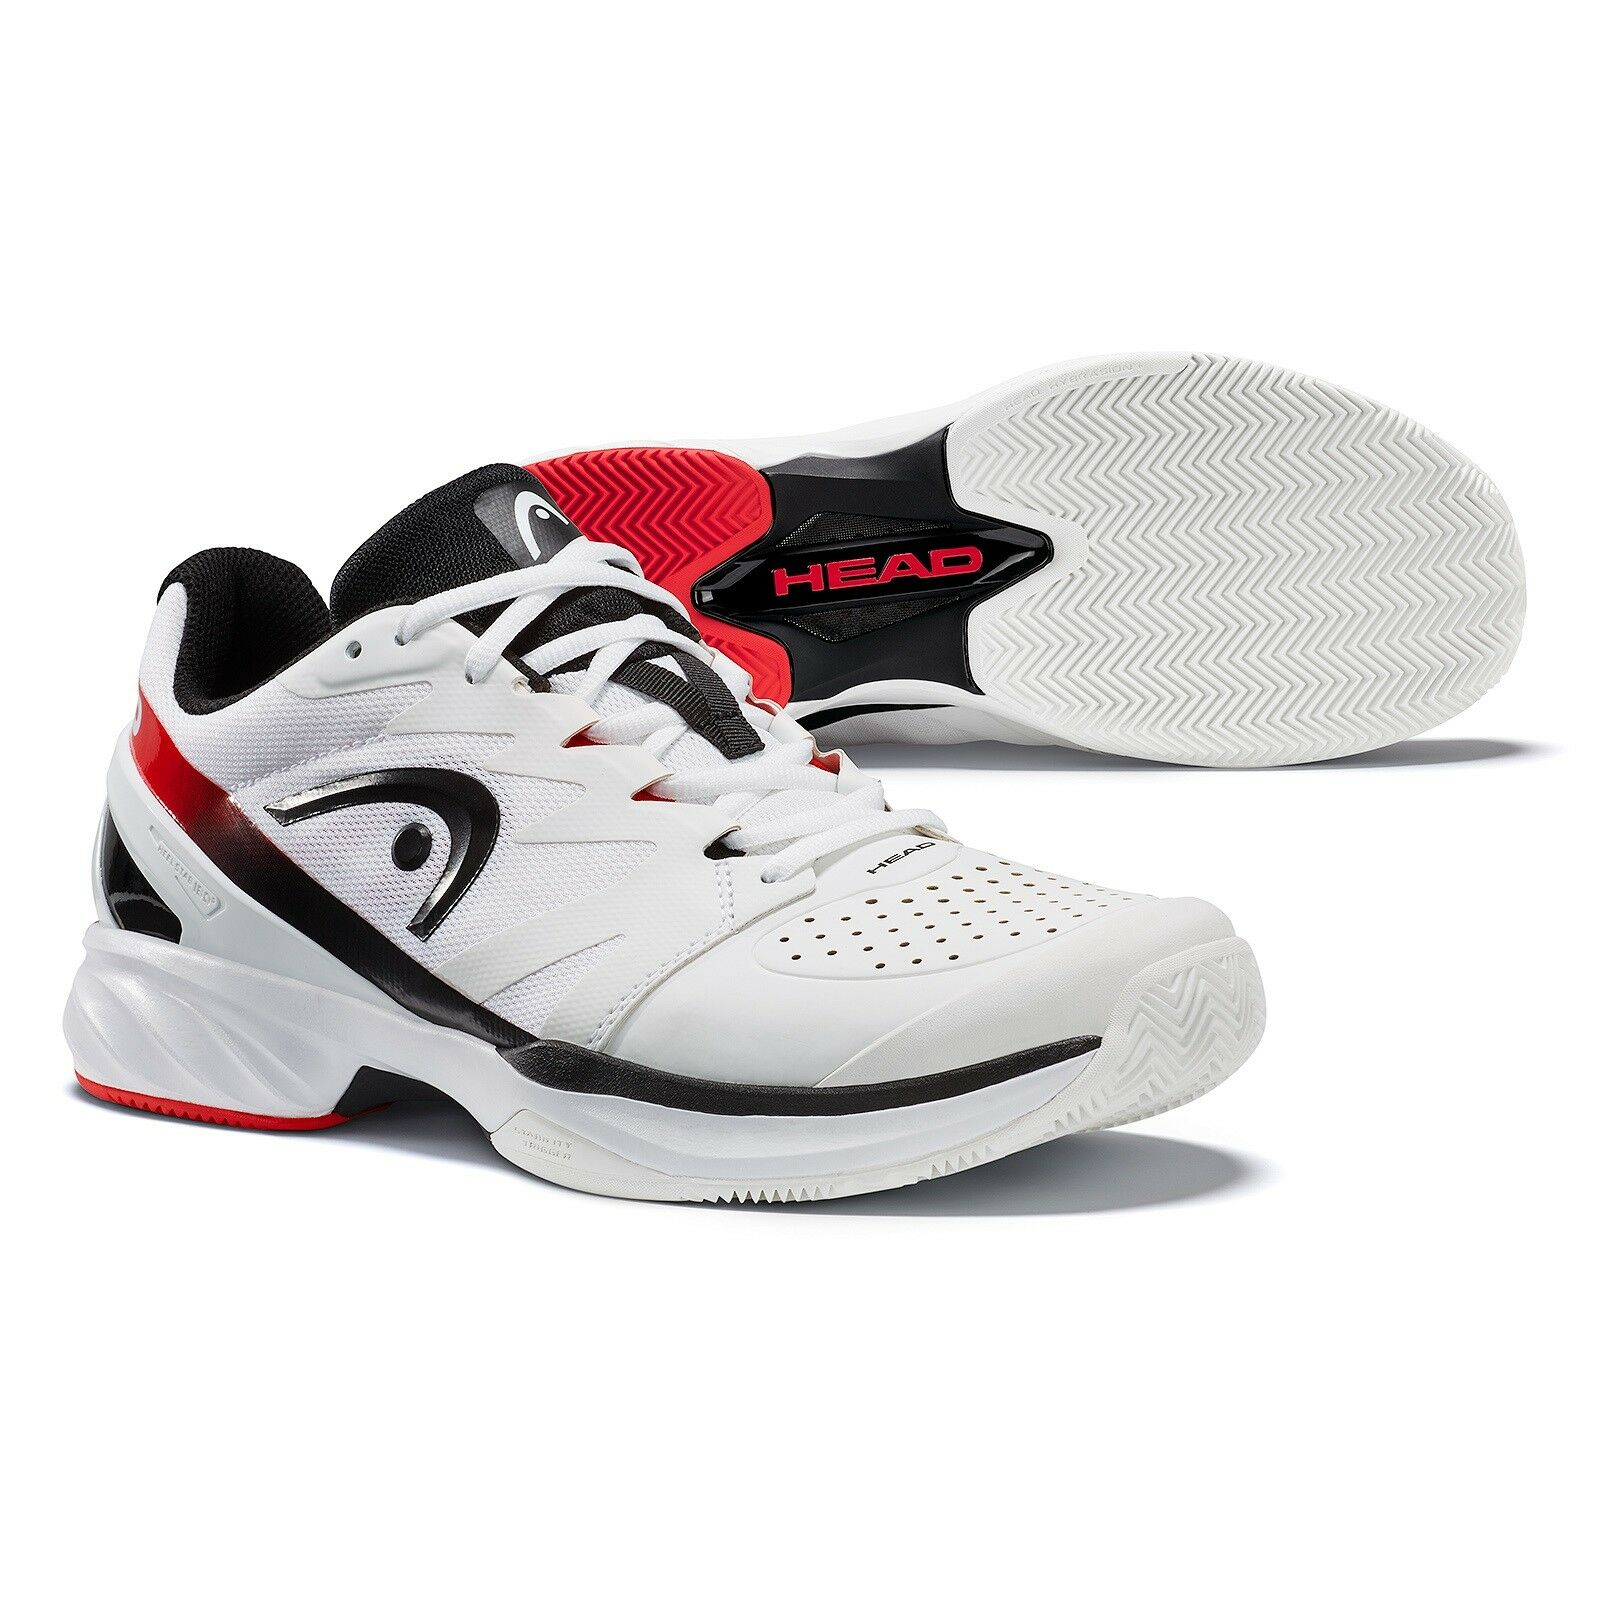 Headsprint Pro 2.0 clay mens tennis shoes court shoes white black